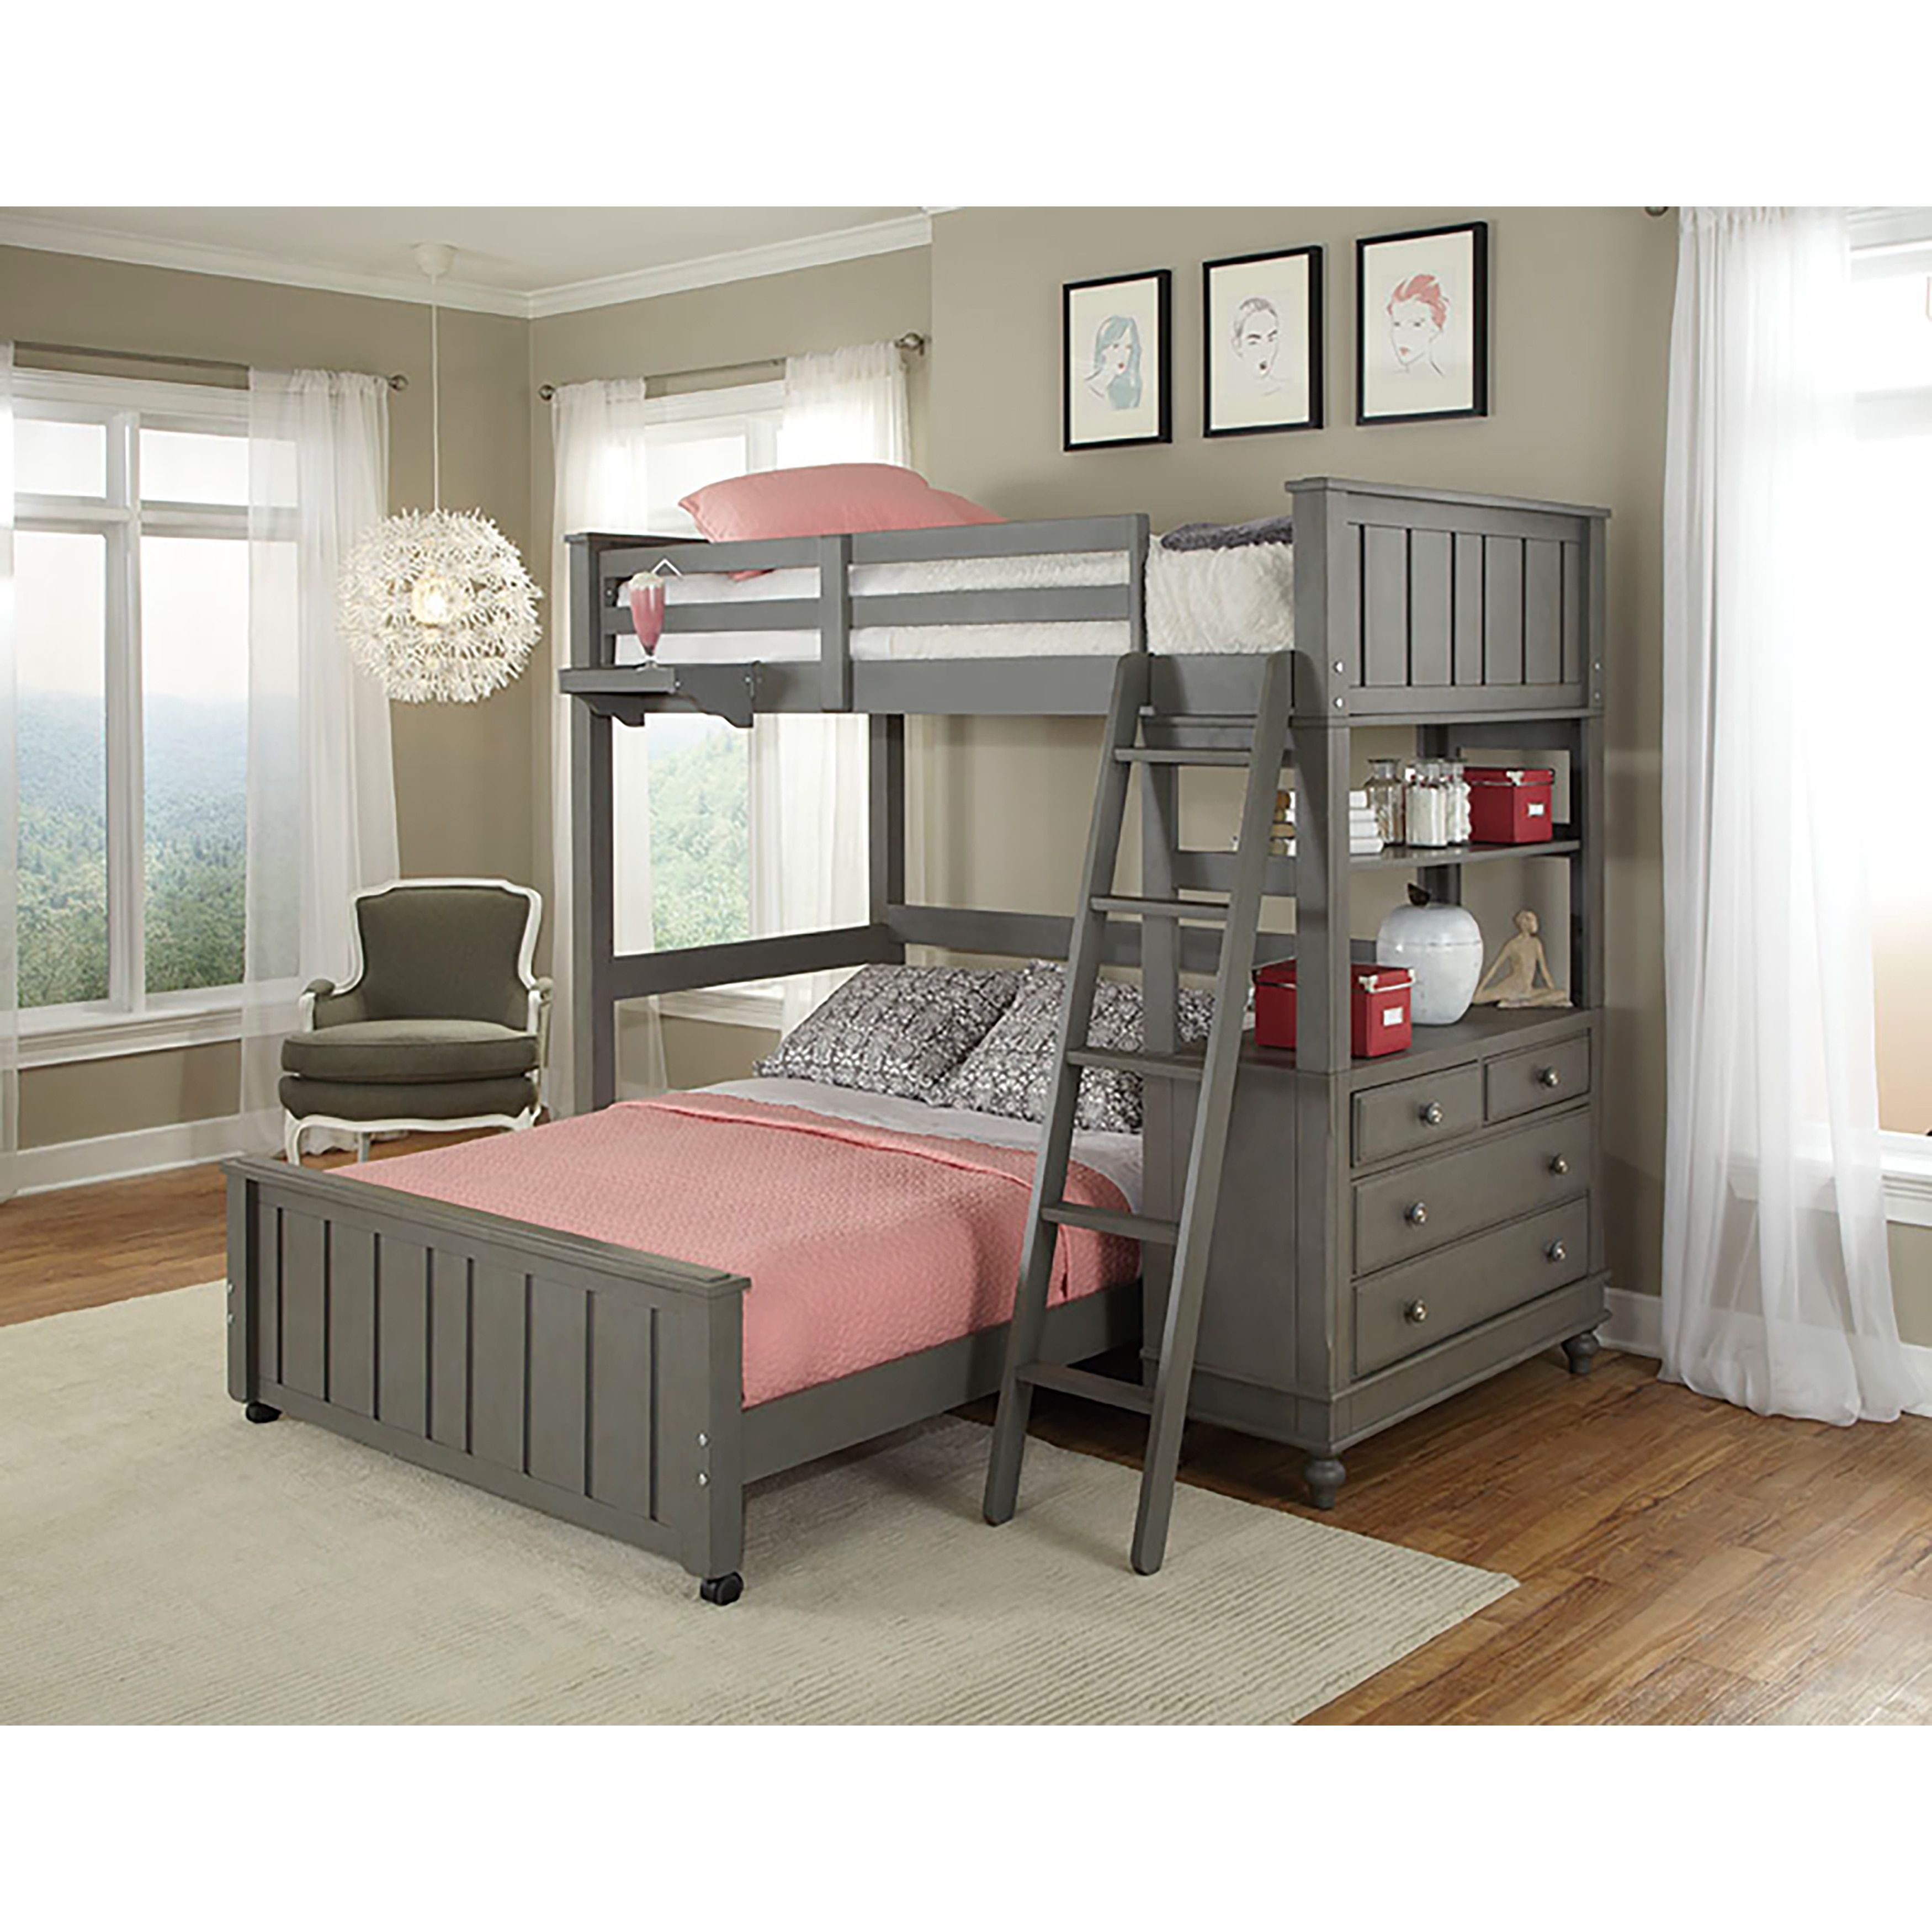 ne kids lake house stone grey twin loft bunk bed with full lower